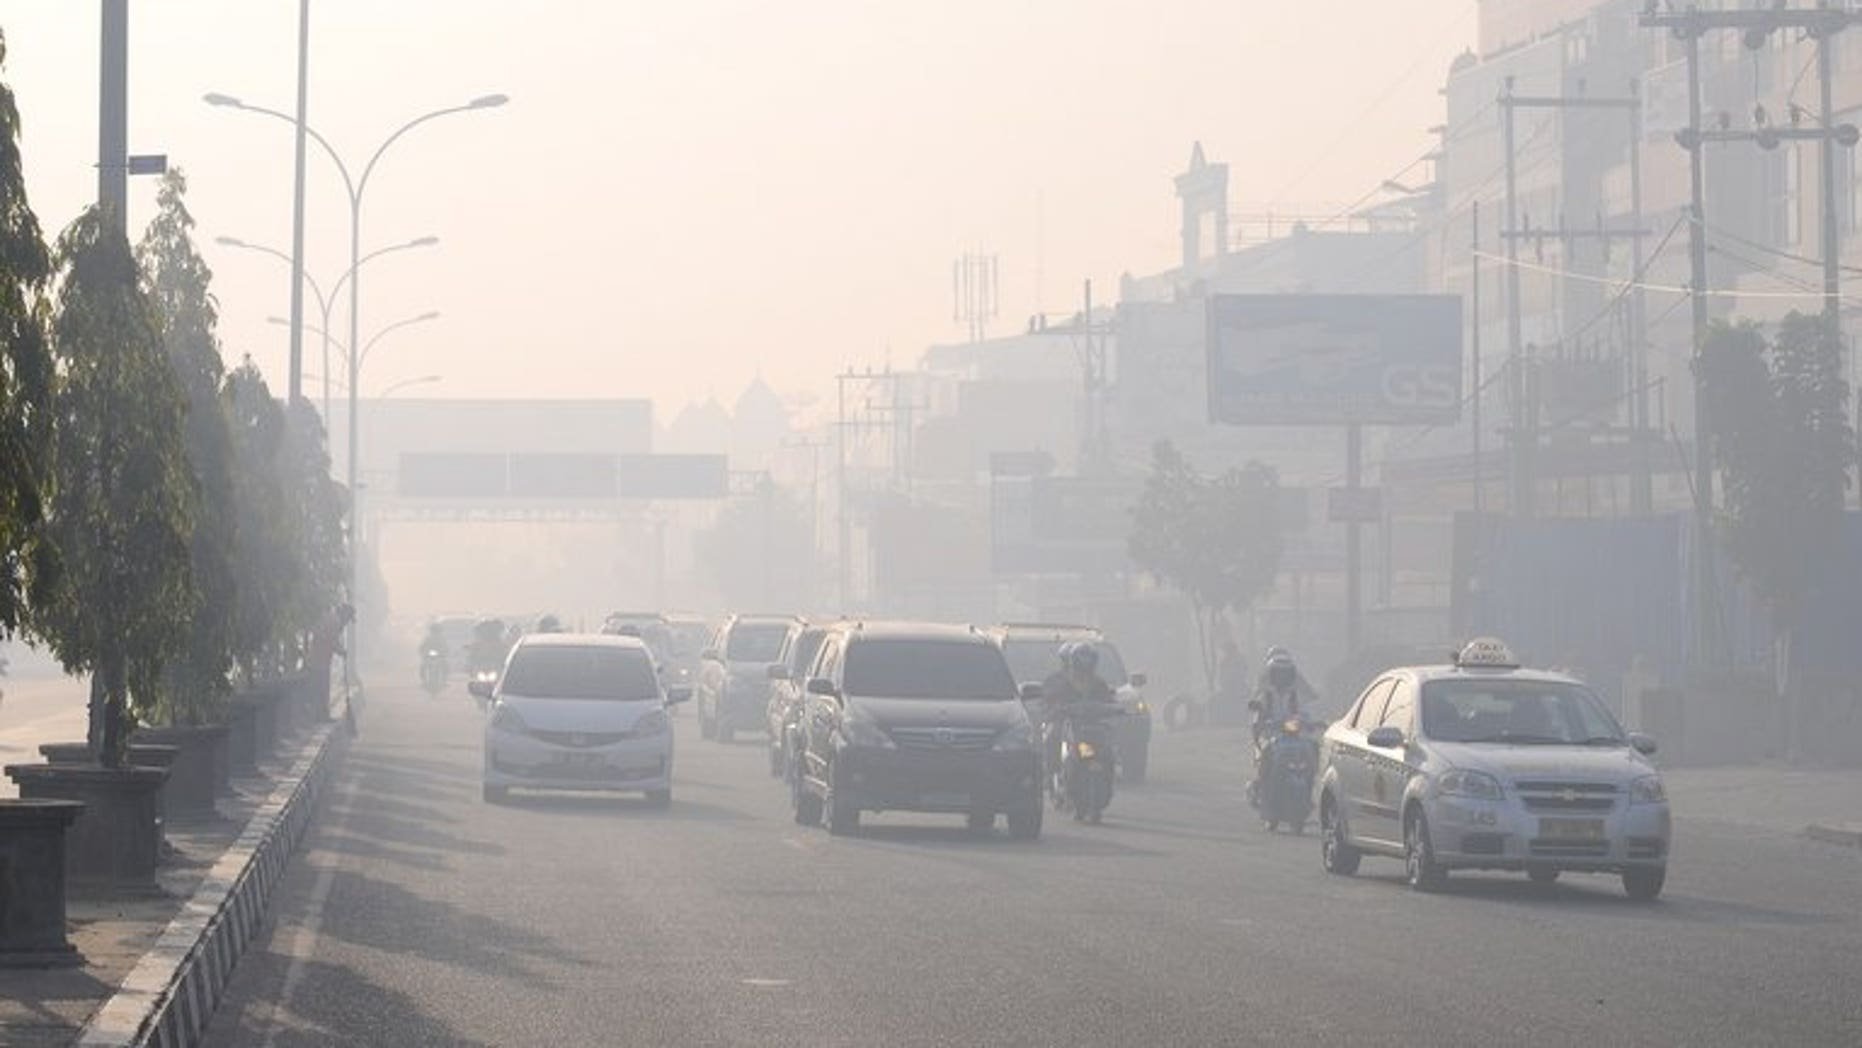 Commuters travel on a road blanketed by haze due to nearby forest fires, in Pekanbaru city, capital of Riau province on Sumatra island on June 19, 2013. Indonesia plans to use weather changing technology to try to unleash torrents of rain and extinguish raging fires on Sumatra island that have cloaked neighbouring Singapore in thick haze, an official said Wednesday.